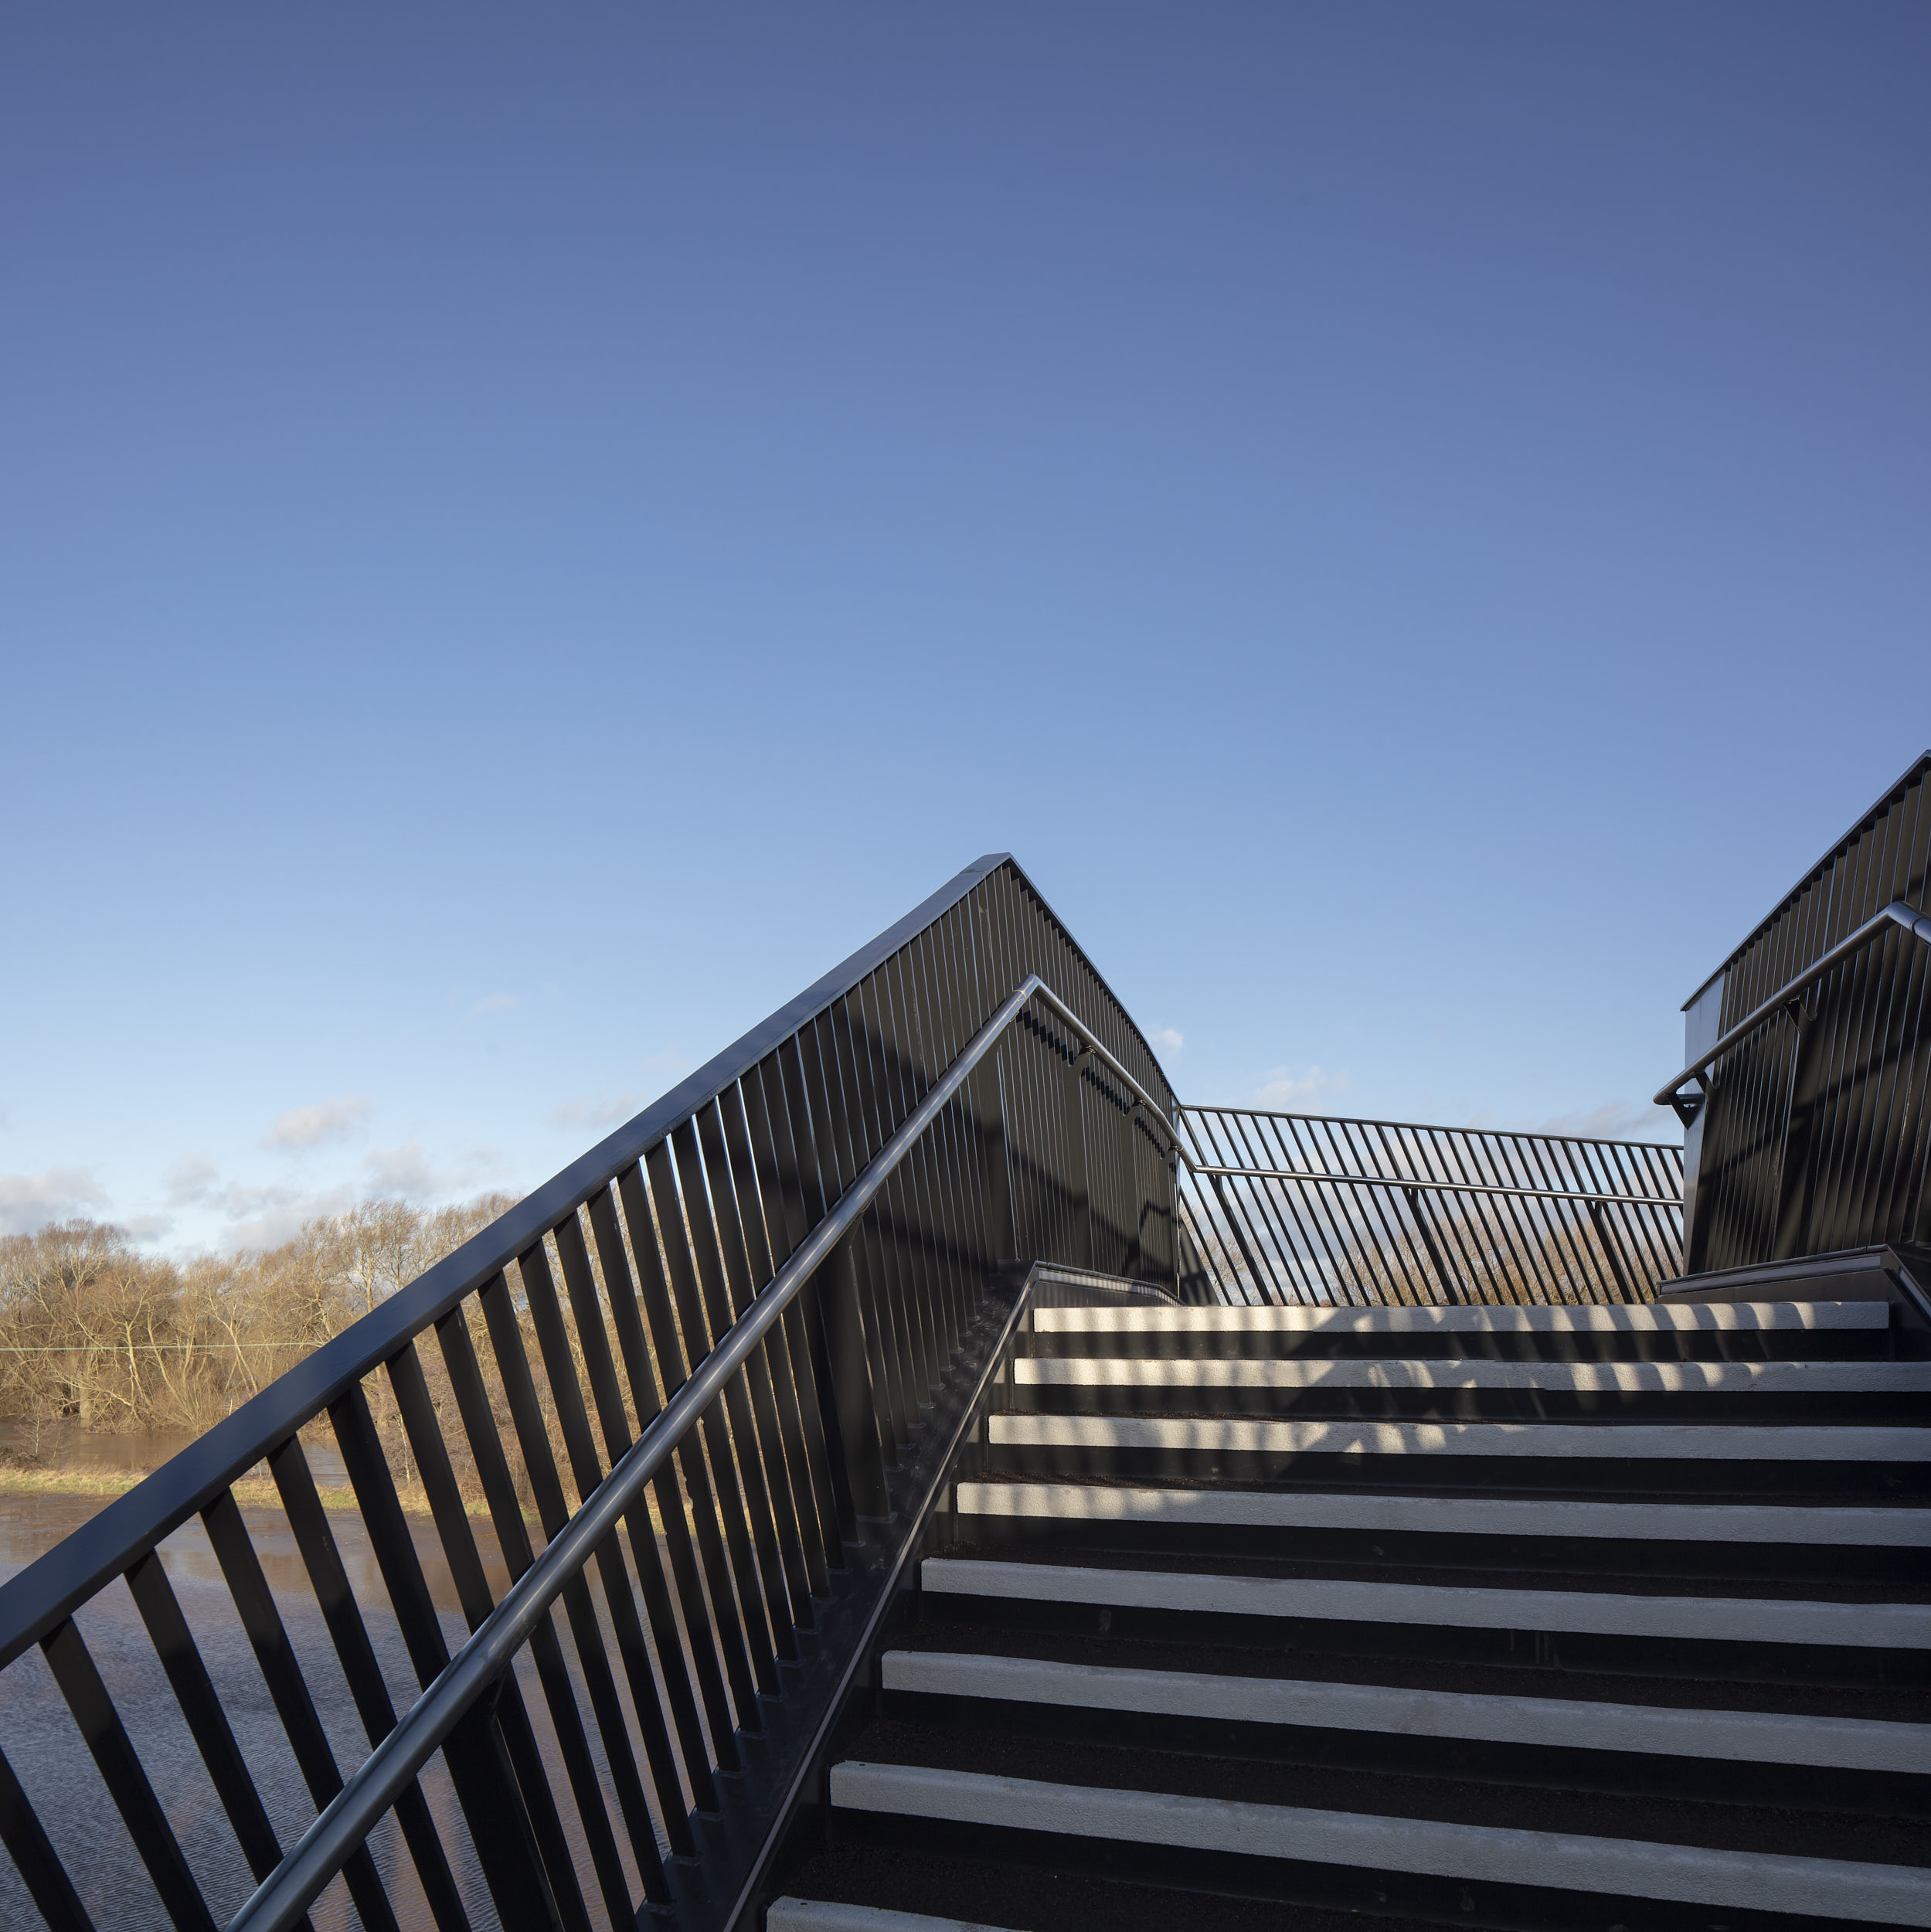 Architectural photography of the finely-detailed stair and balustrade.